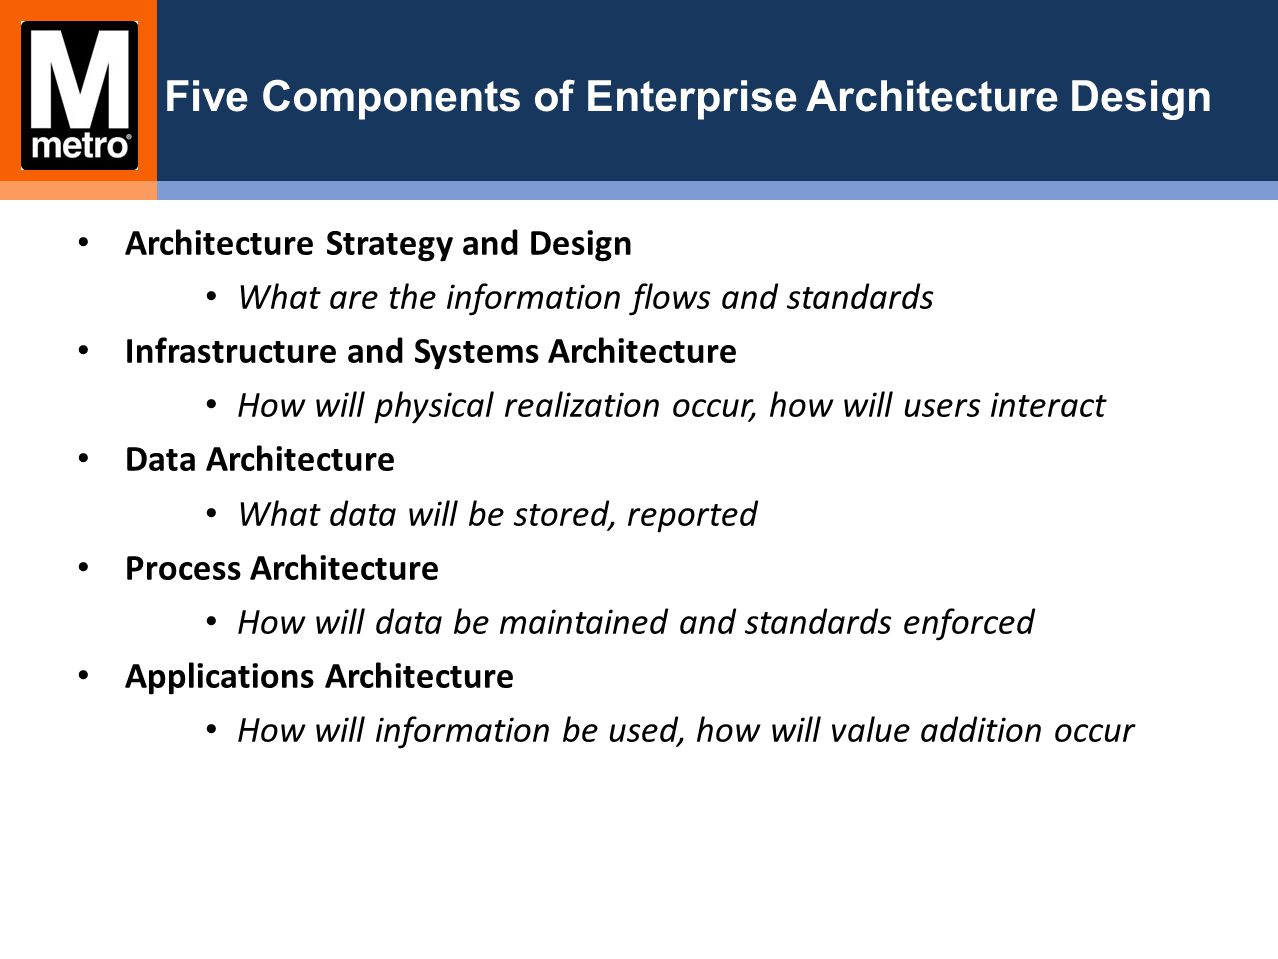 Five Components of Enterprise Architecture Design